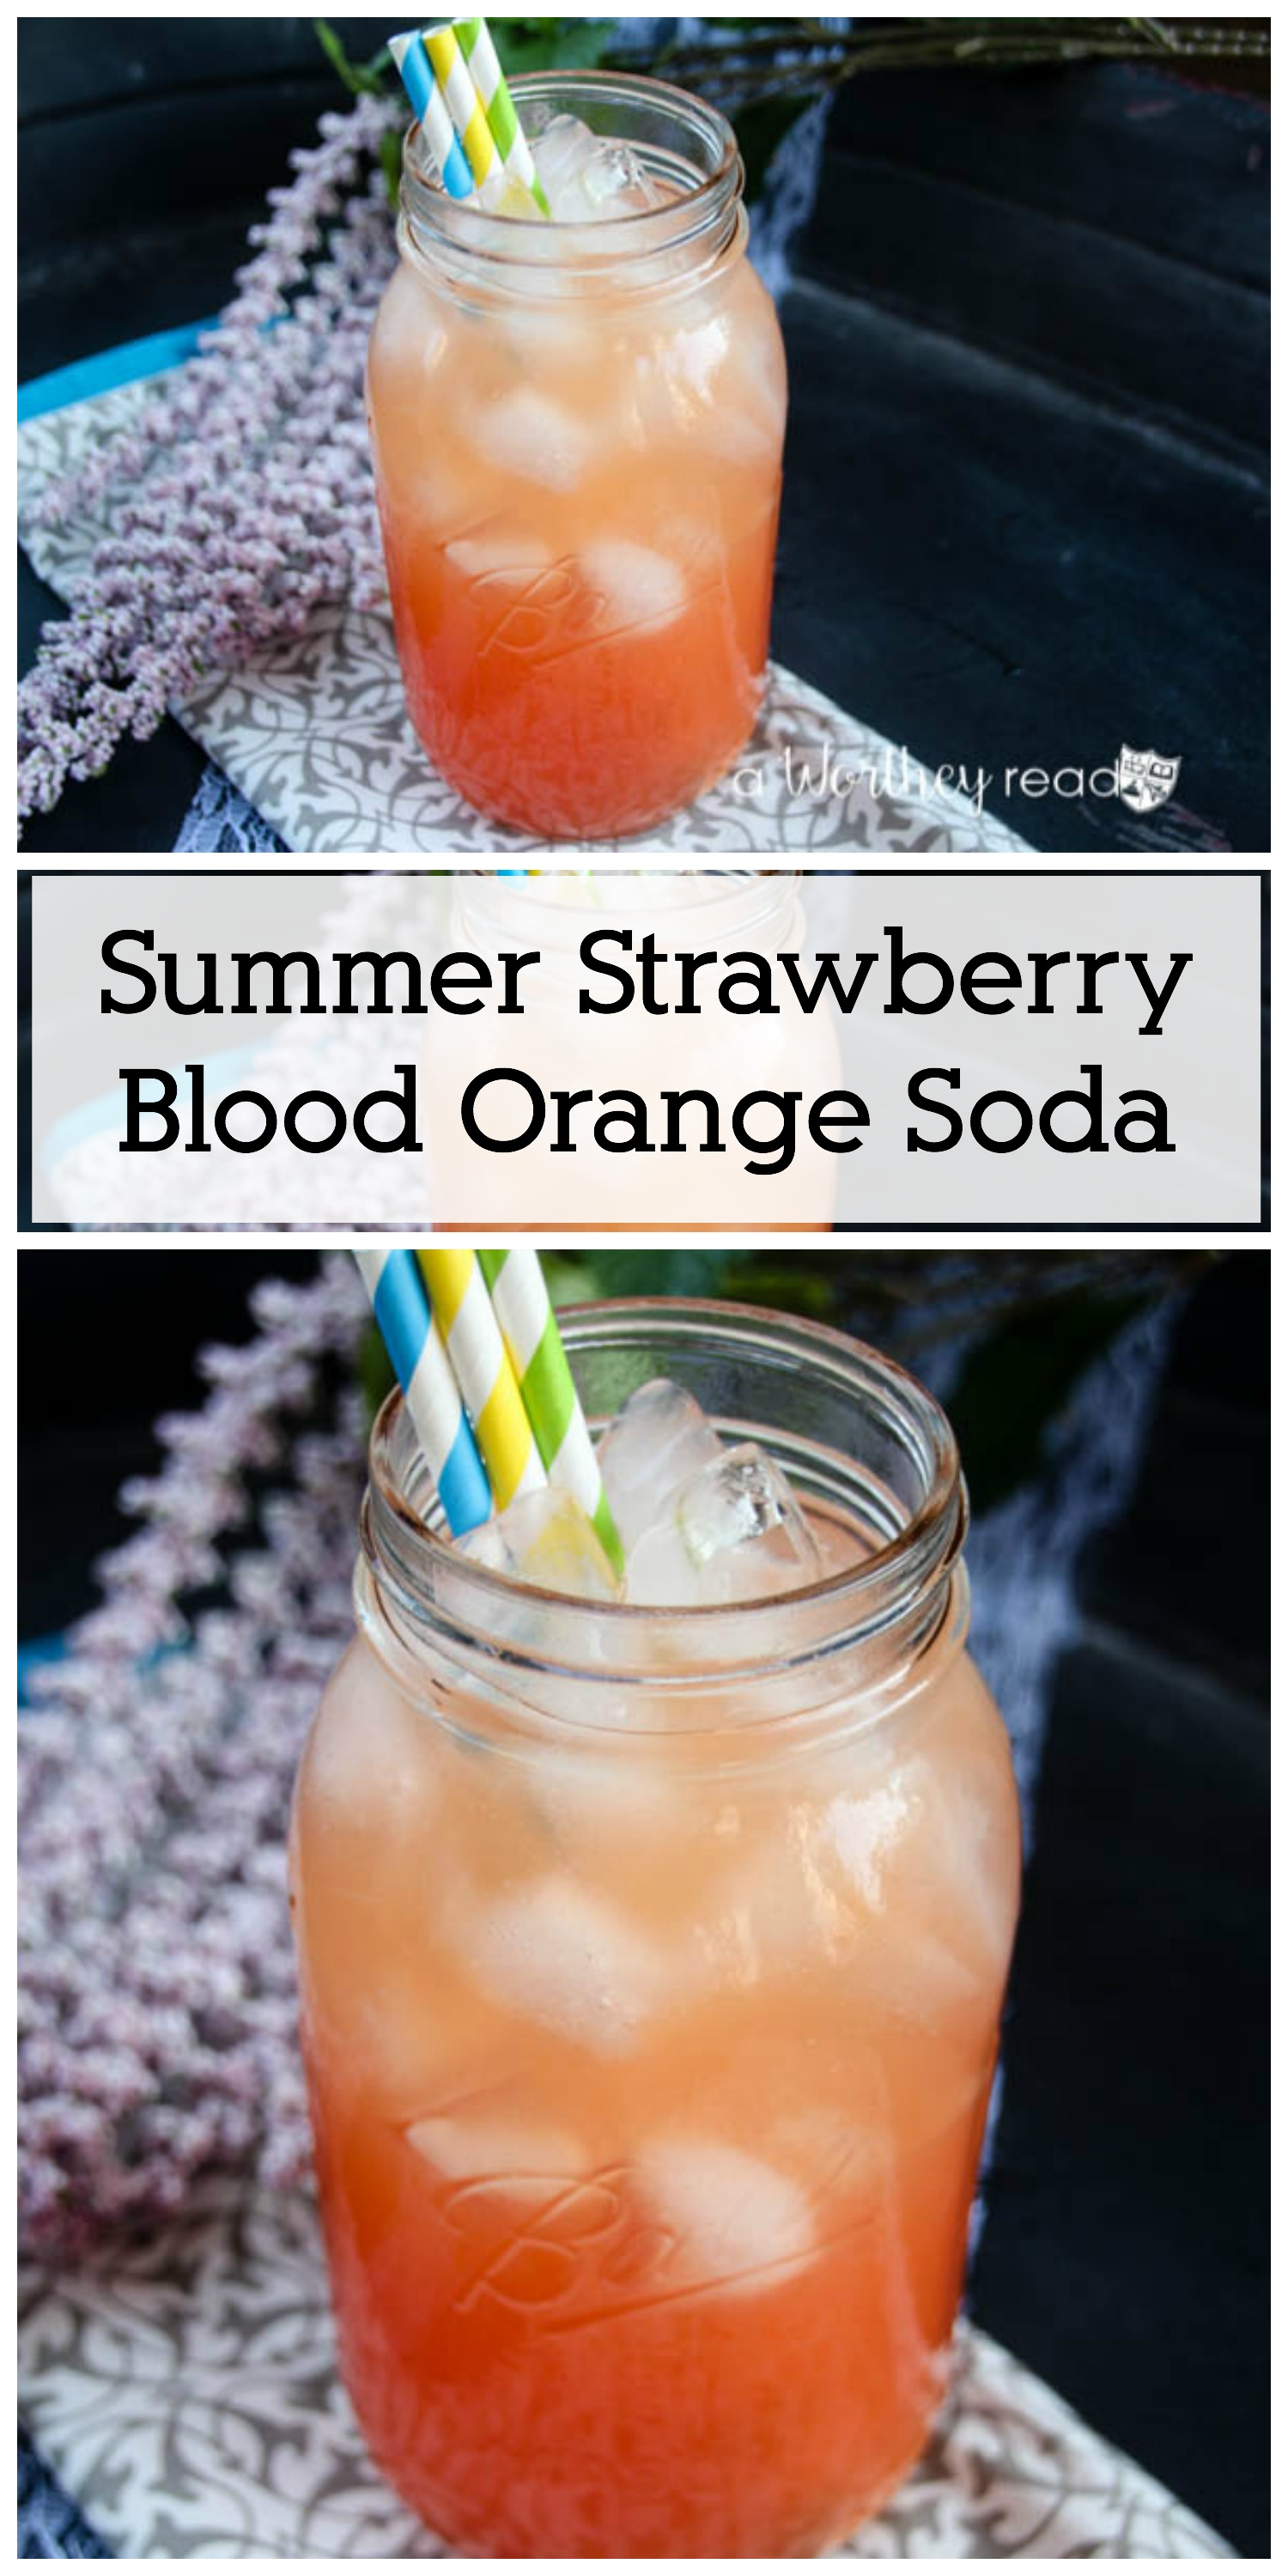 Cool down with a ice-cold refreshing virgin, kid-friendly drink- Summer Strawberry Blood Orange Soda